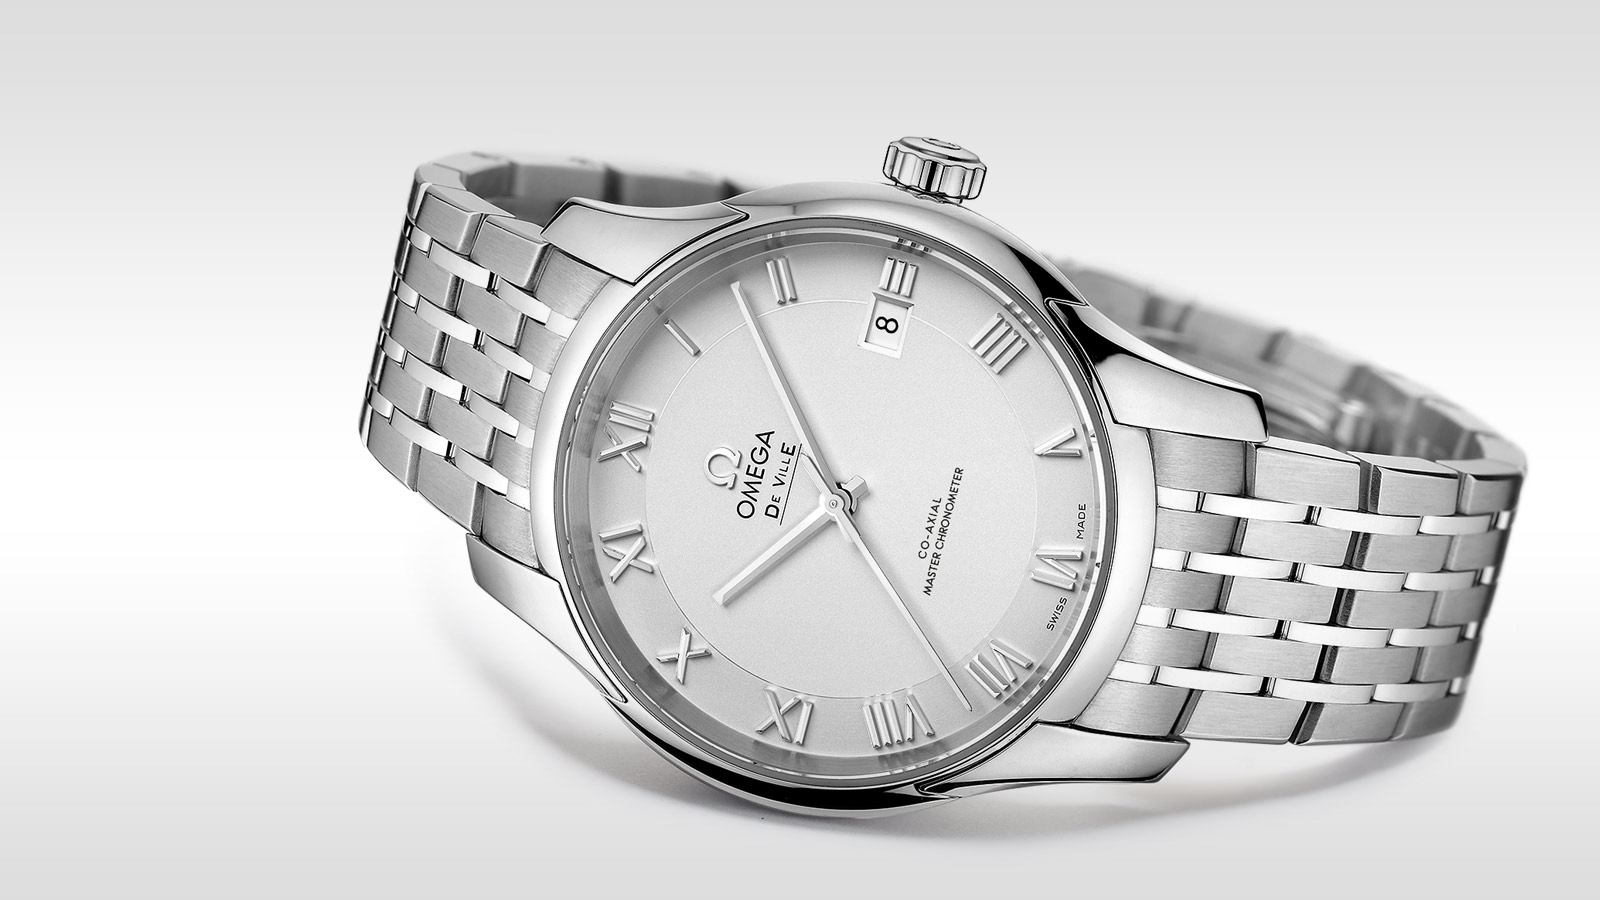 De Ville Hour Vision Hour Vision Omega Co‑Axial Master Chronometer 41 mm - 433.10.41.21.02.001 - View 1